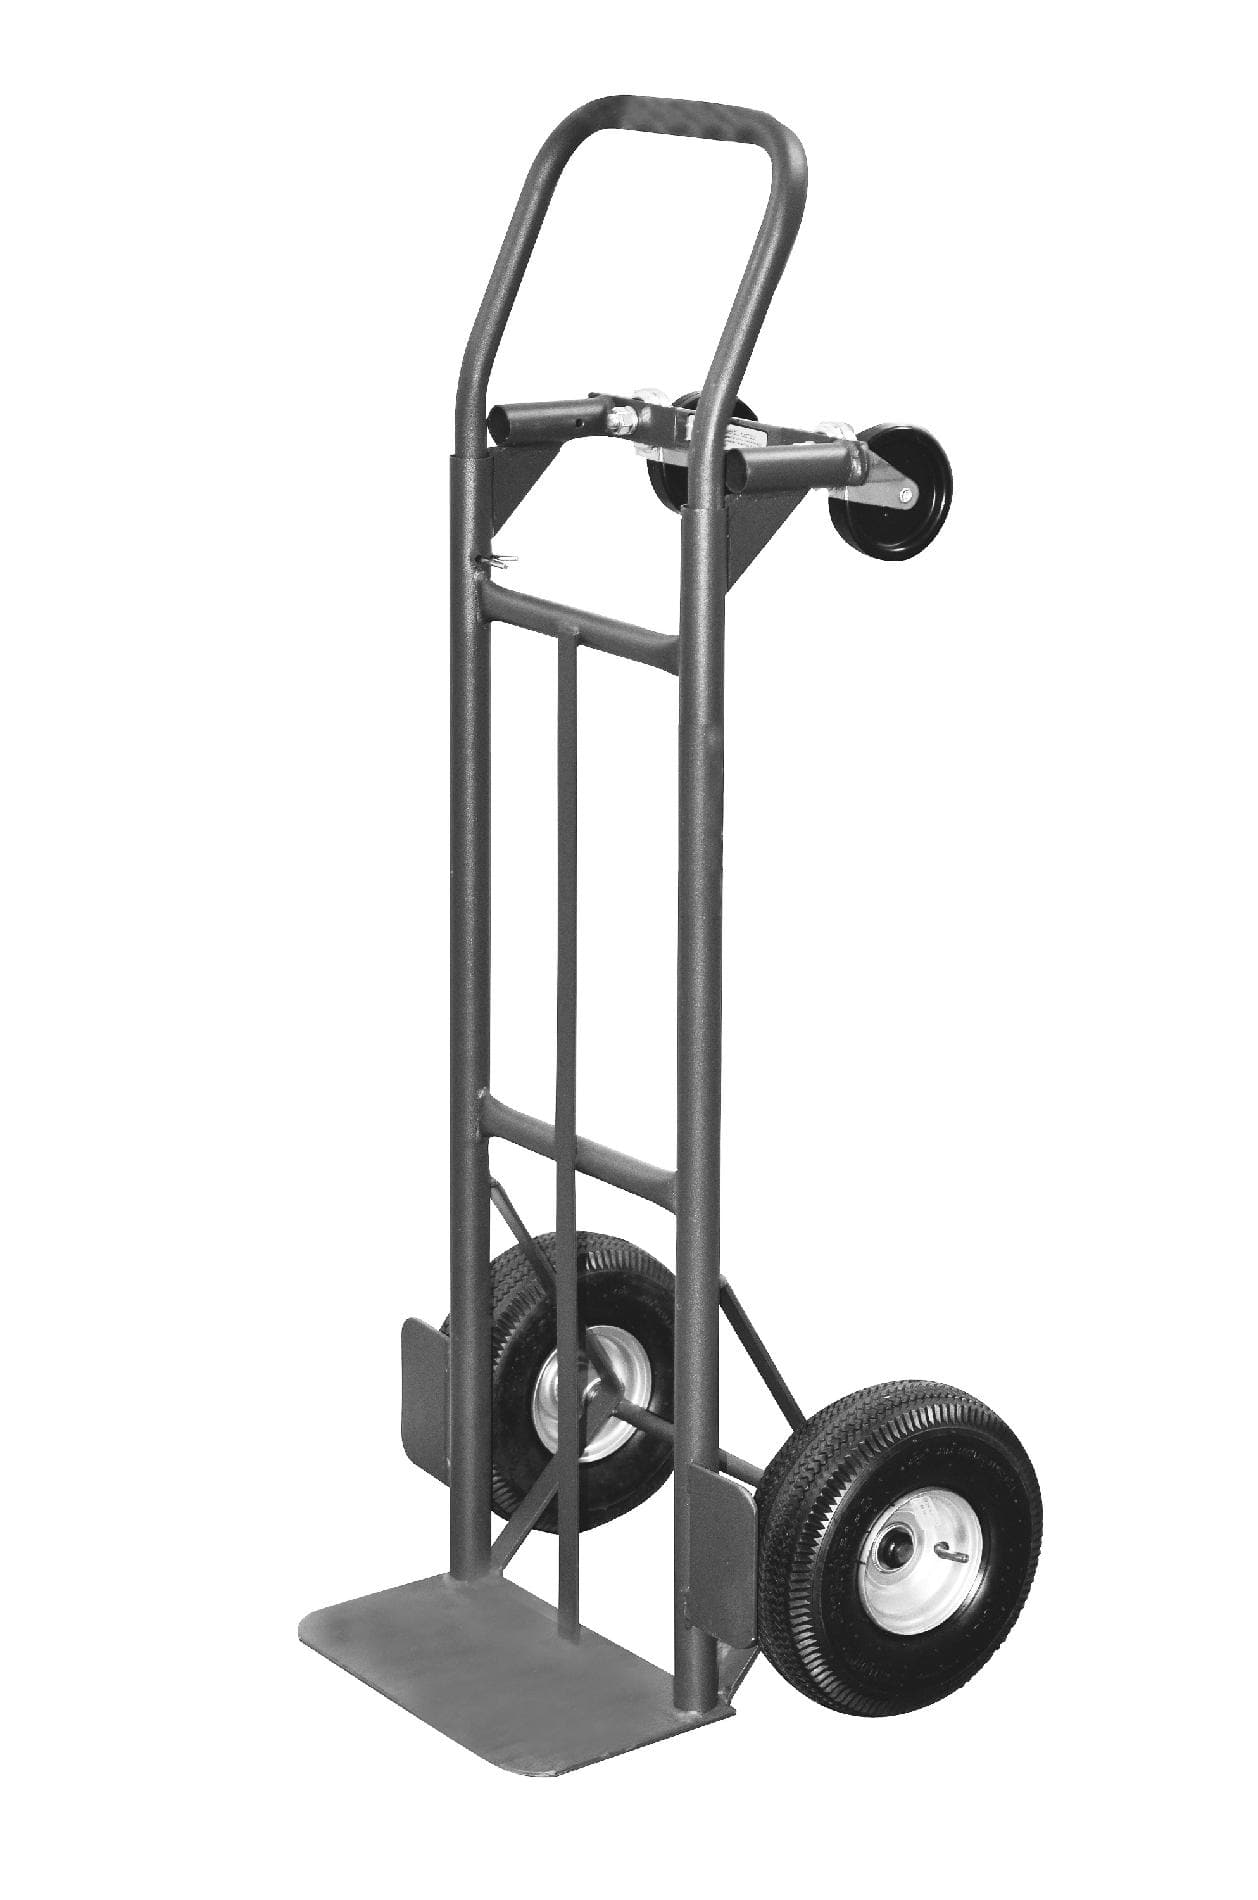 Milwaukee Hand Truck 800 lb. Capacity 2-Way Convertible Hand Truck $49.96 (or $40.95 AC) @ Sears.com